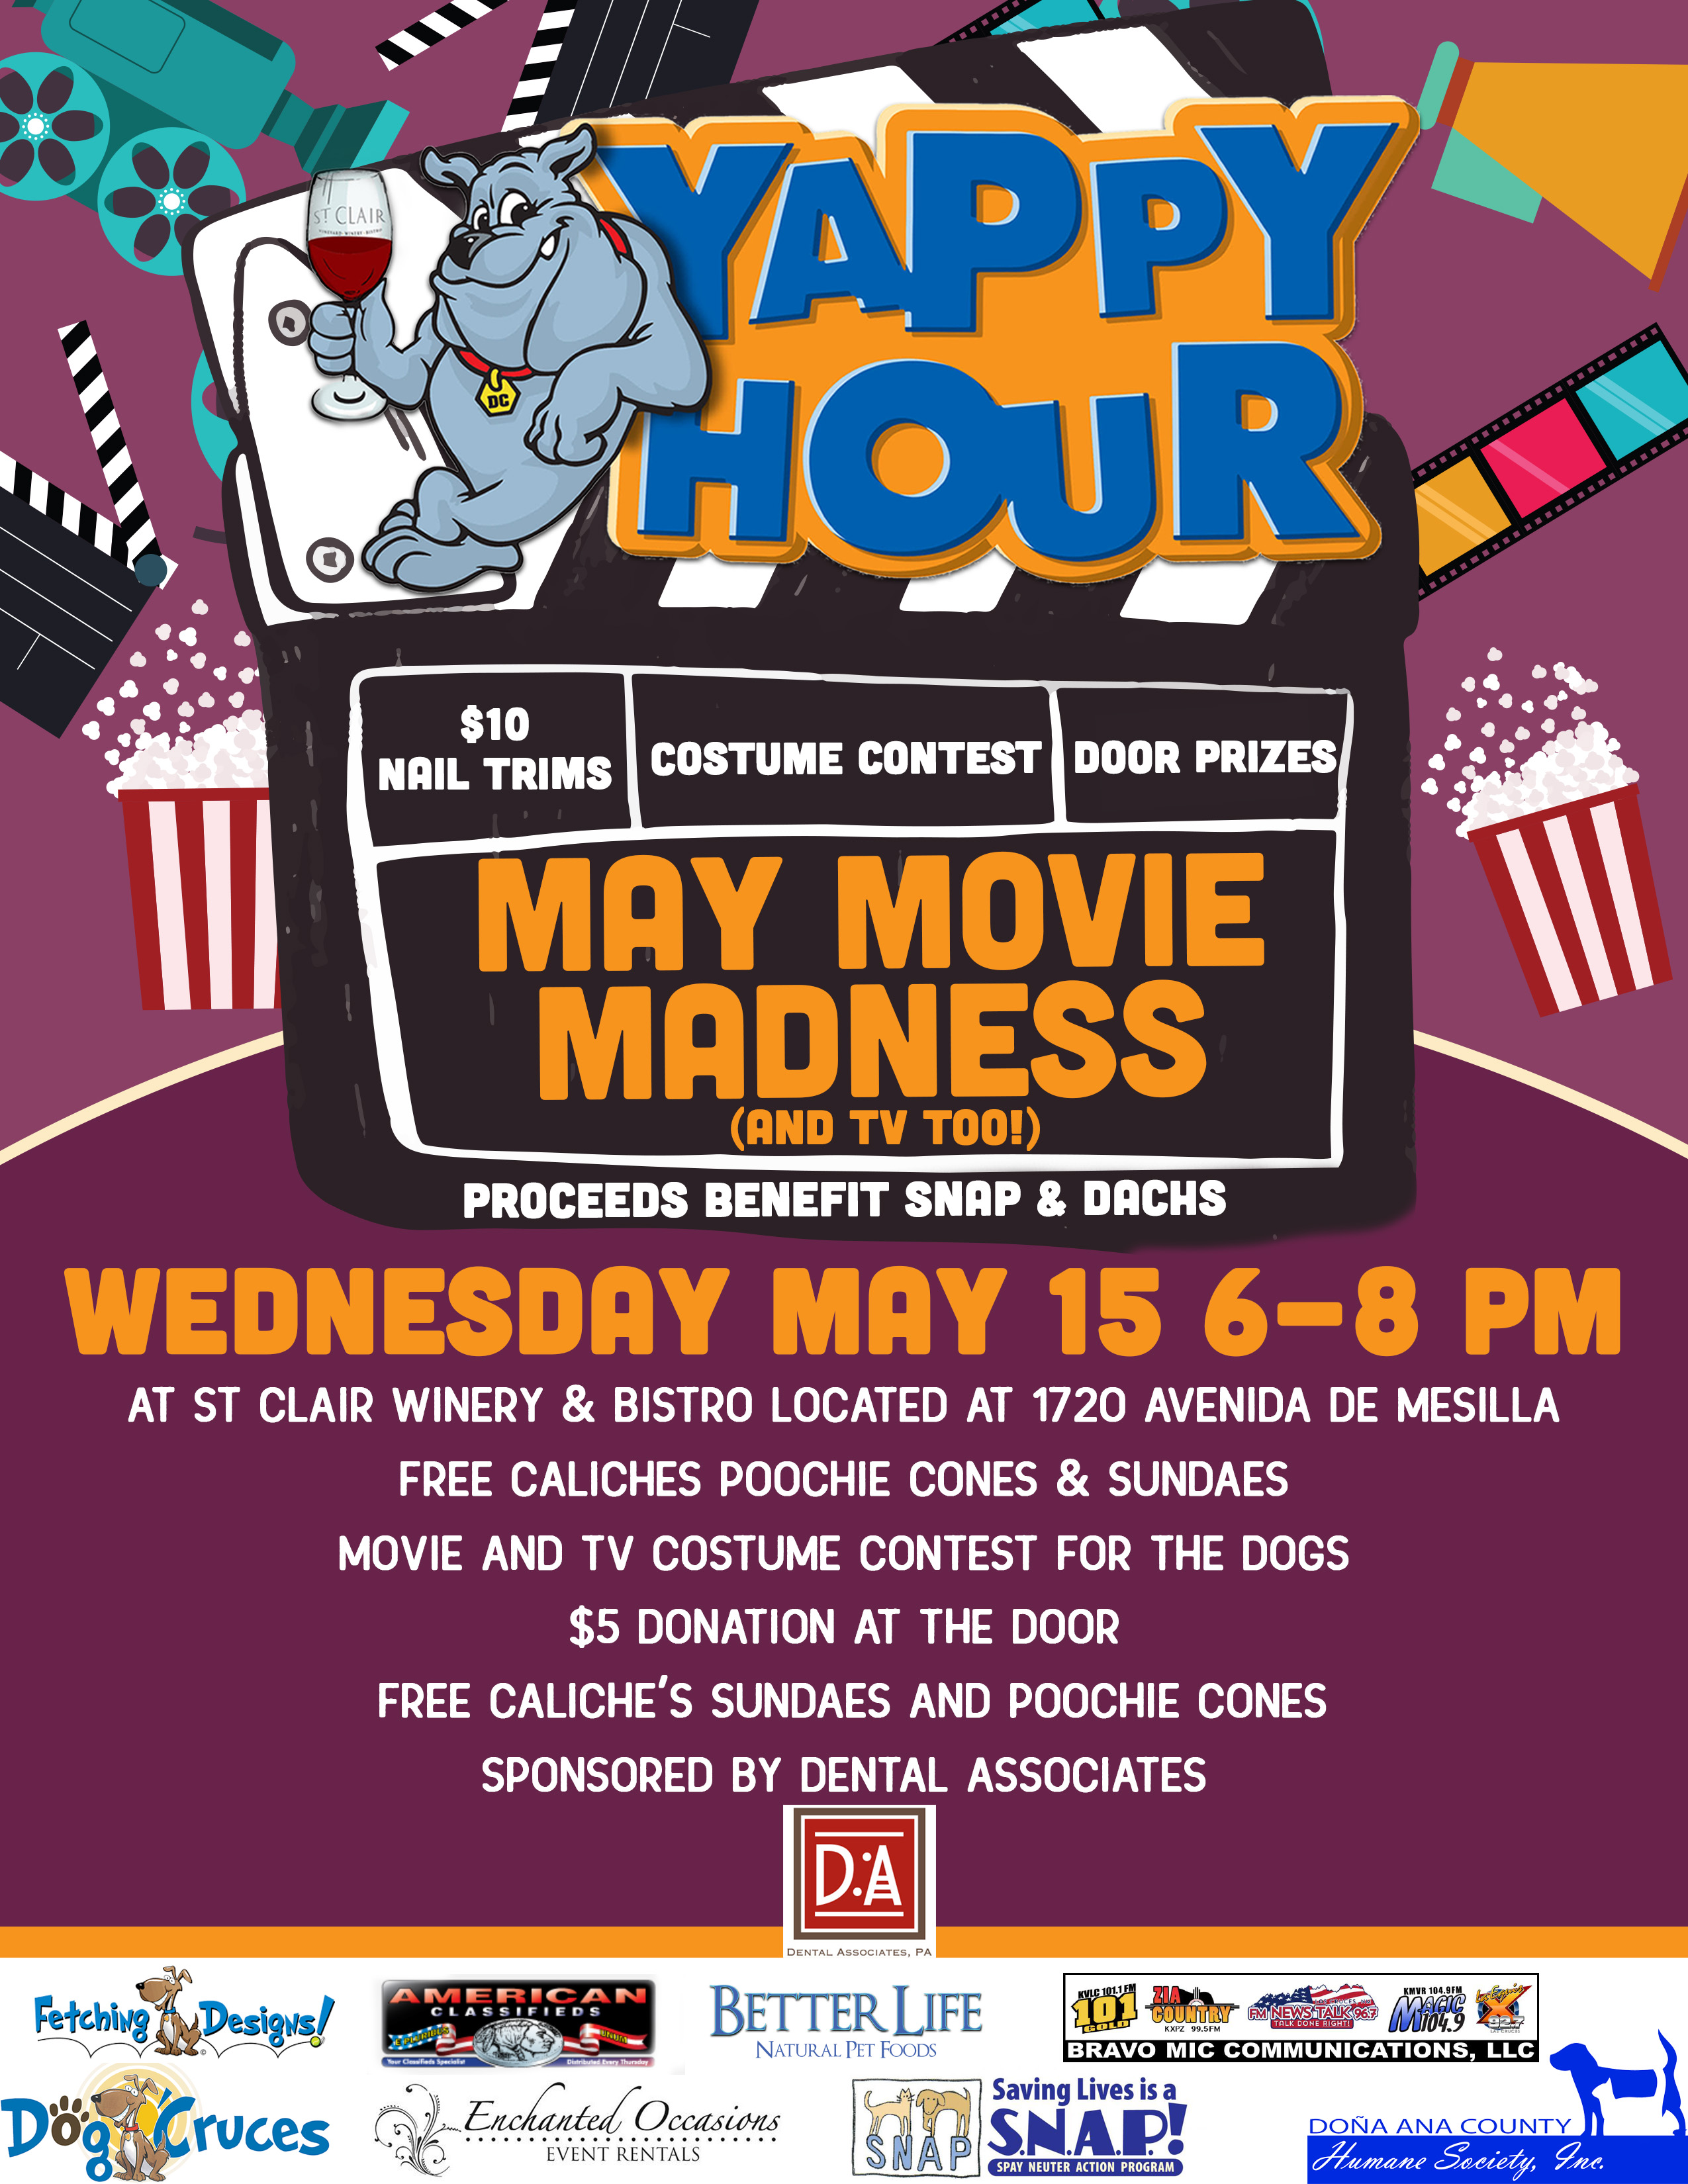 Yappy Hour! May Movie Madness (and TV Too) - Dog'Cruces